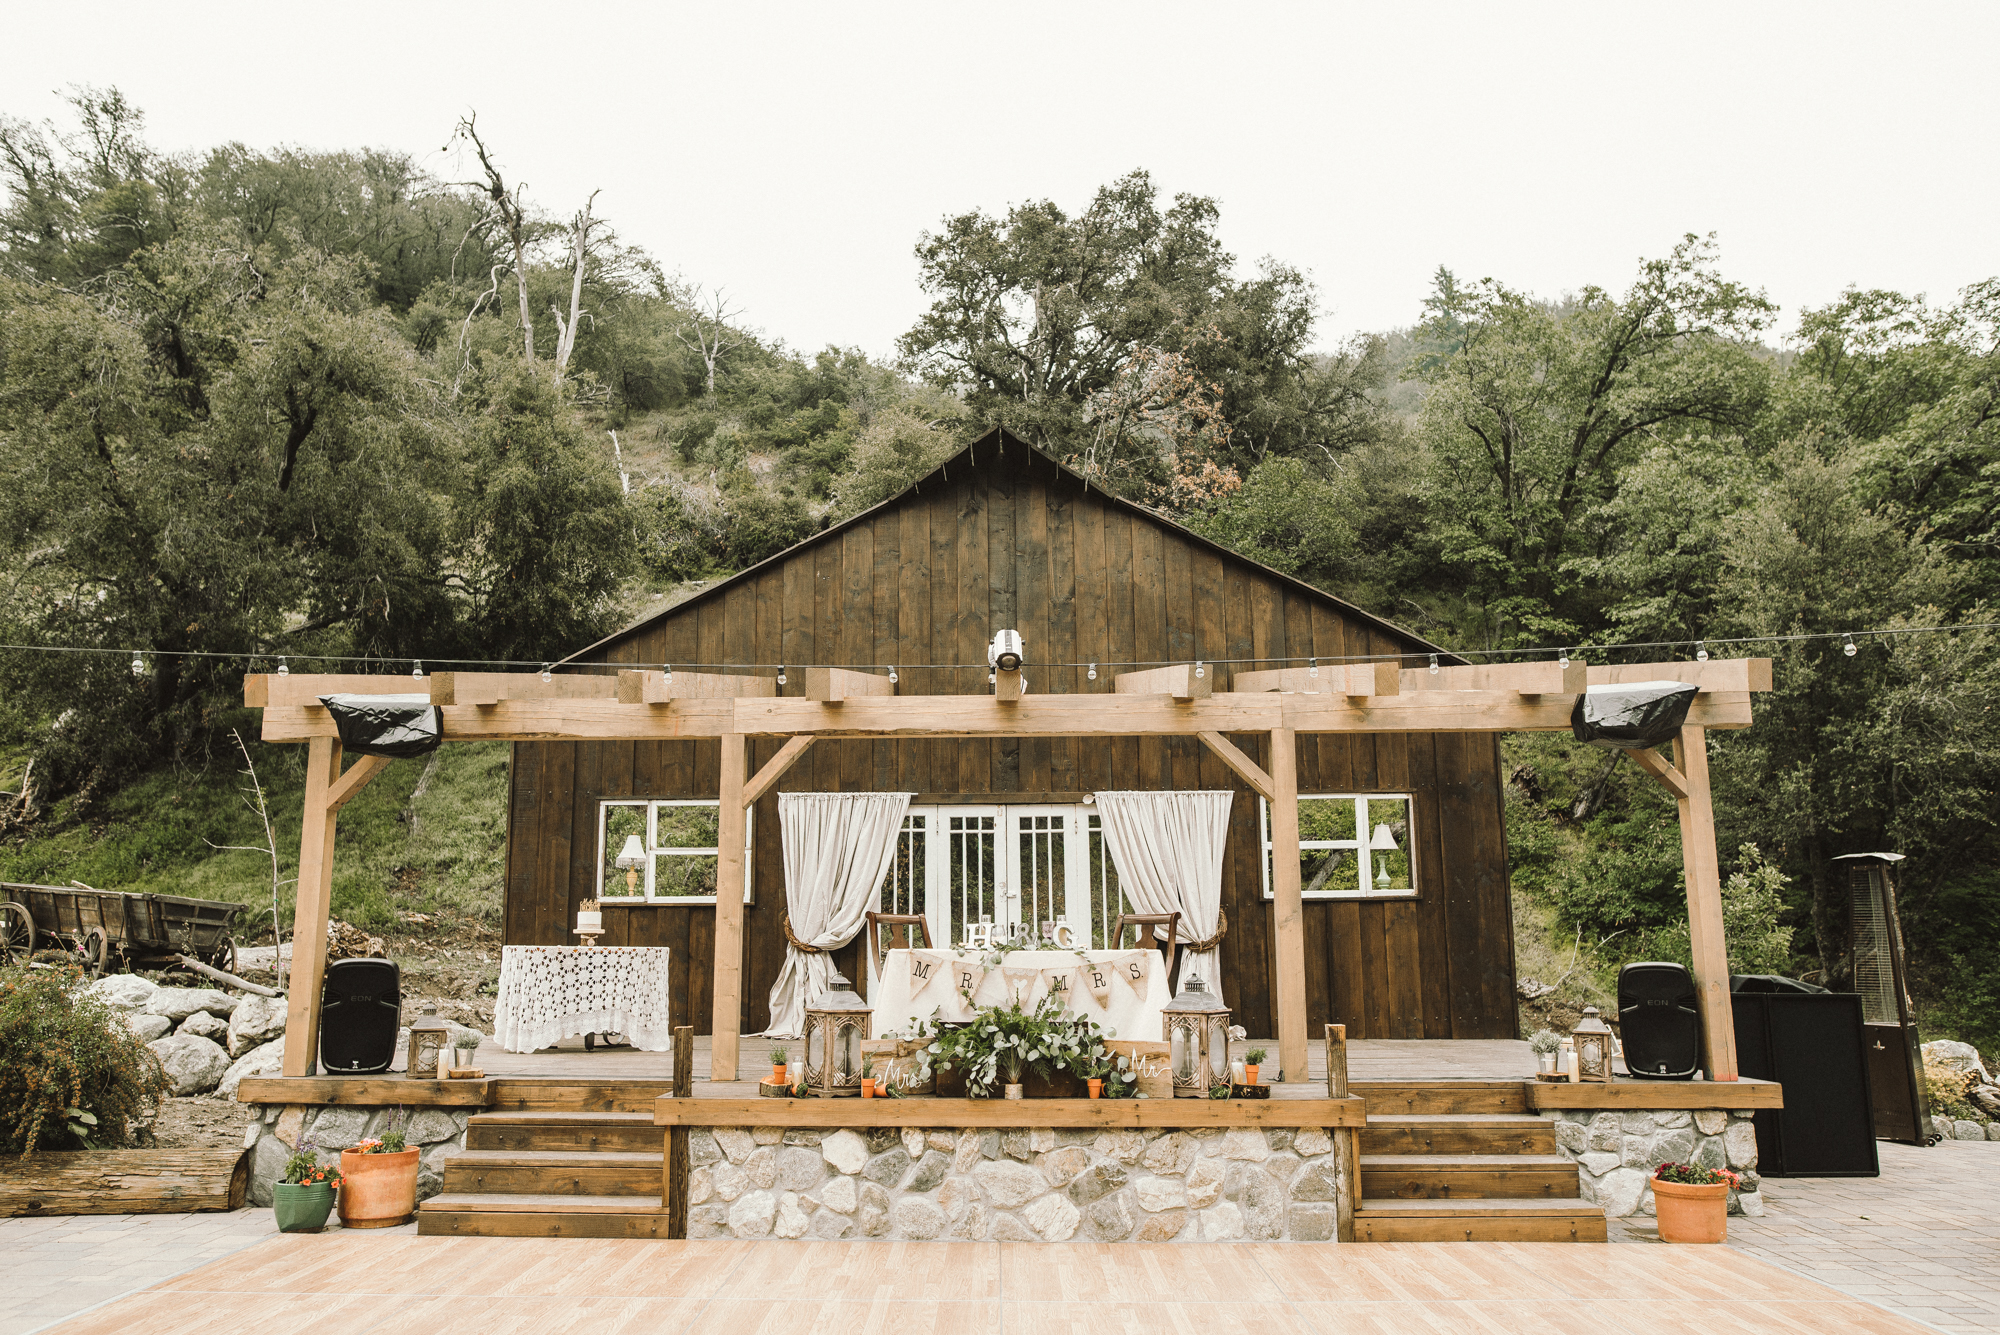 Isaiah & Taylor Photography - Los Angeles - Destination Wedding Photographers - Oak Glen Wilshire Ranch Foggy Forest Wedding-78.jpg